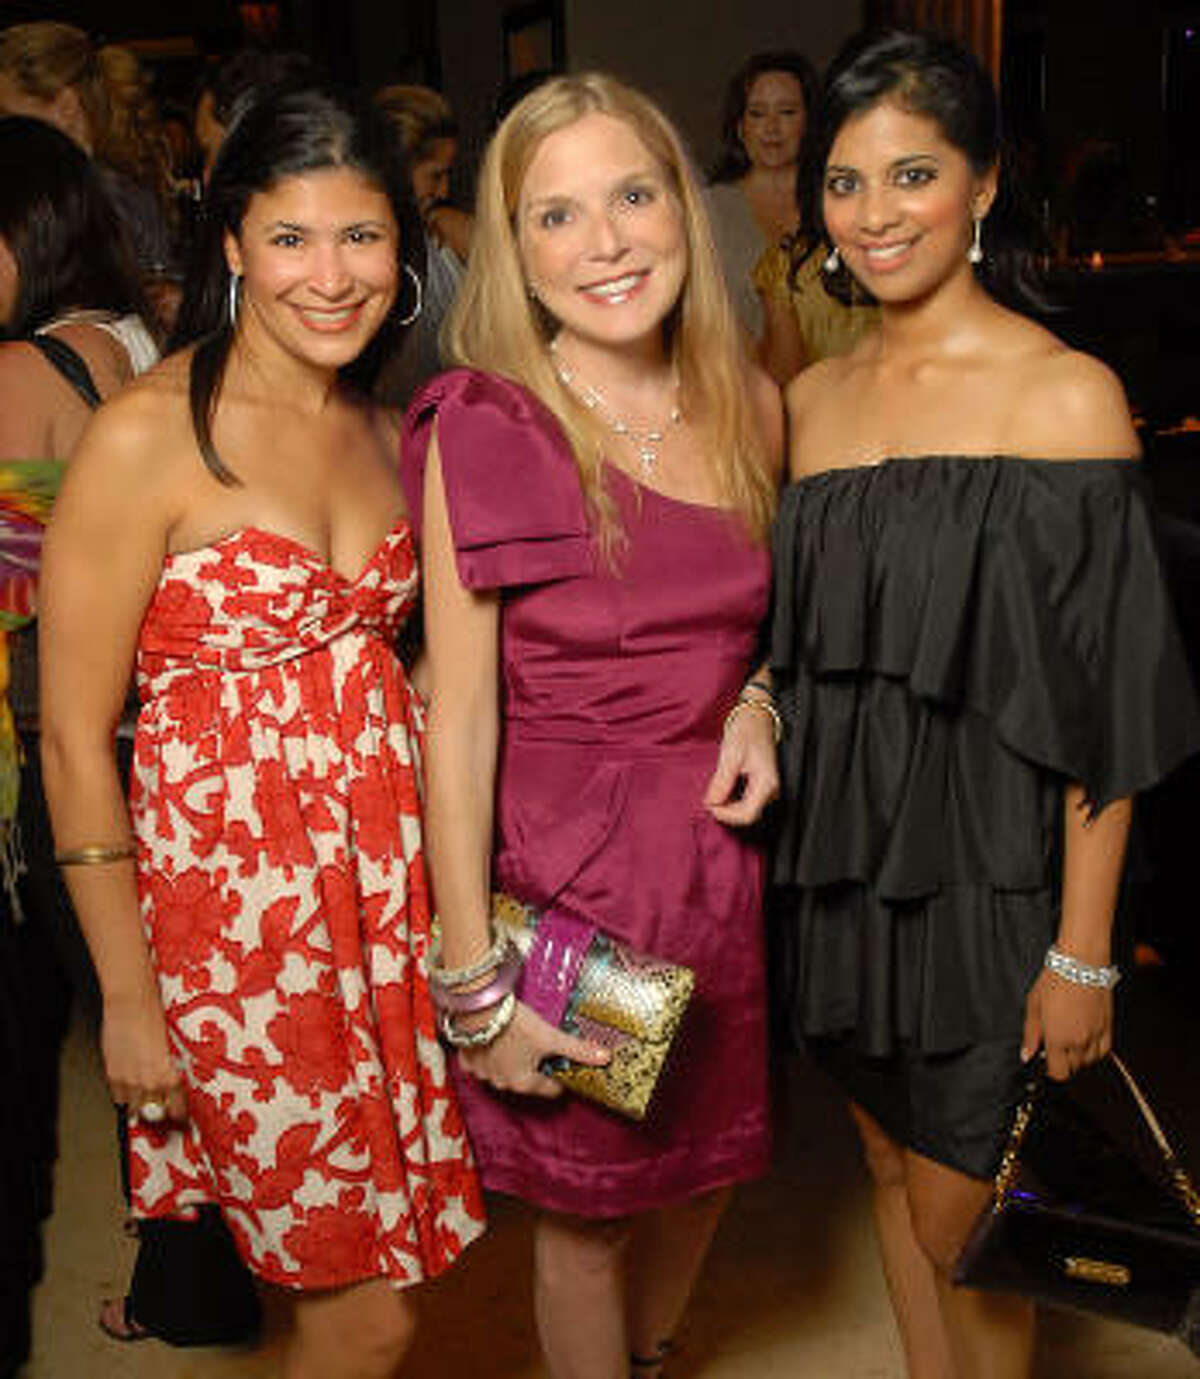 Kristy Junco, Kristen Cannon and Elizabeth Abraham at the Pet Set Soiree at the Hotel ZaZa Friday, Sept. 11.